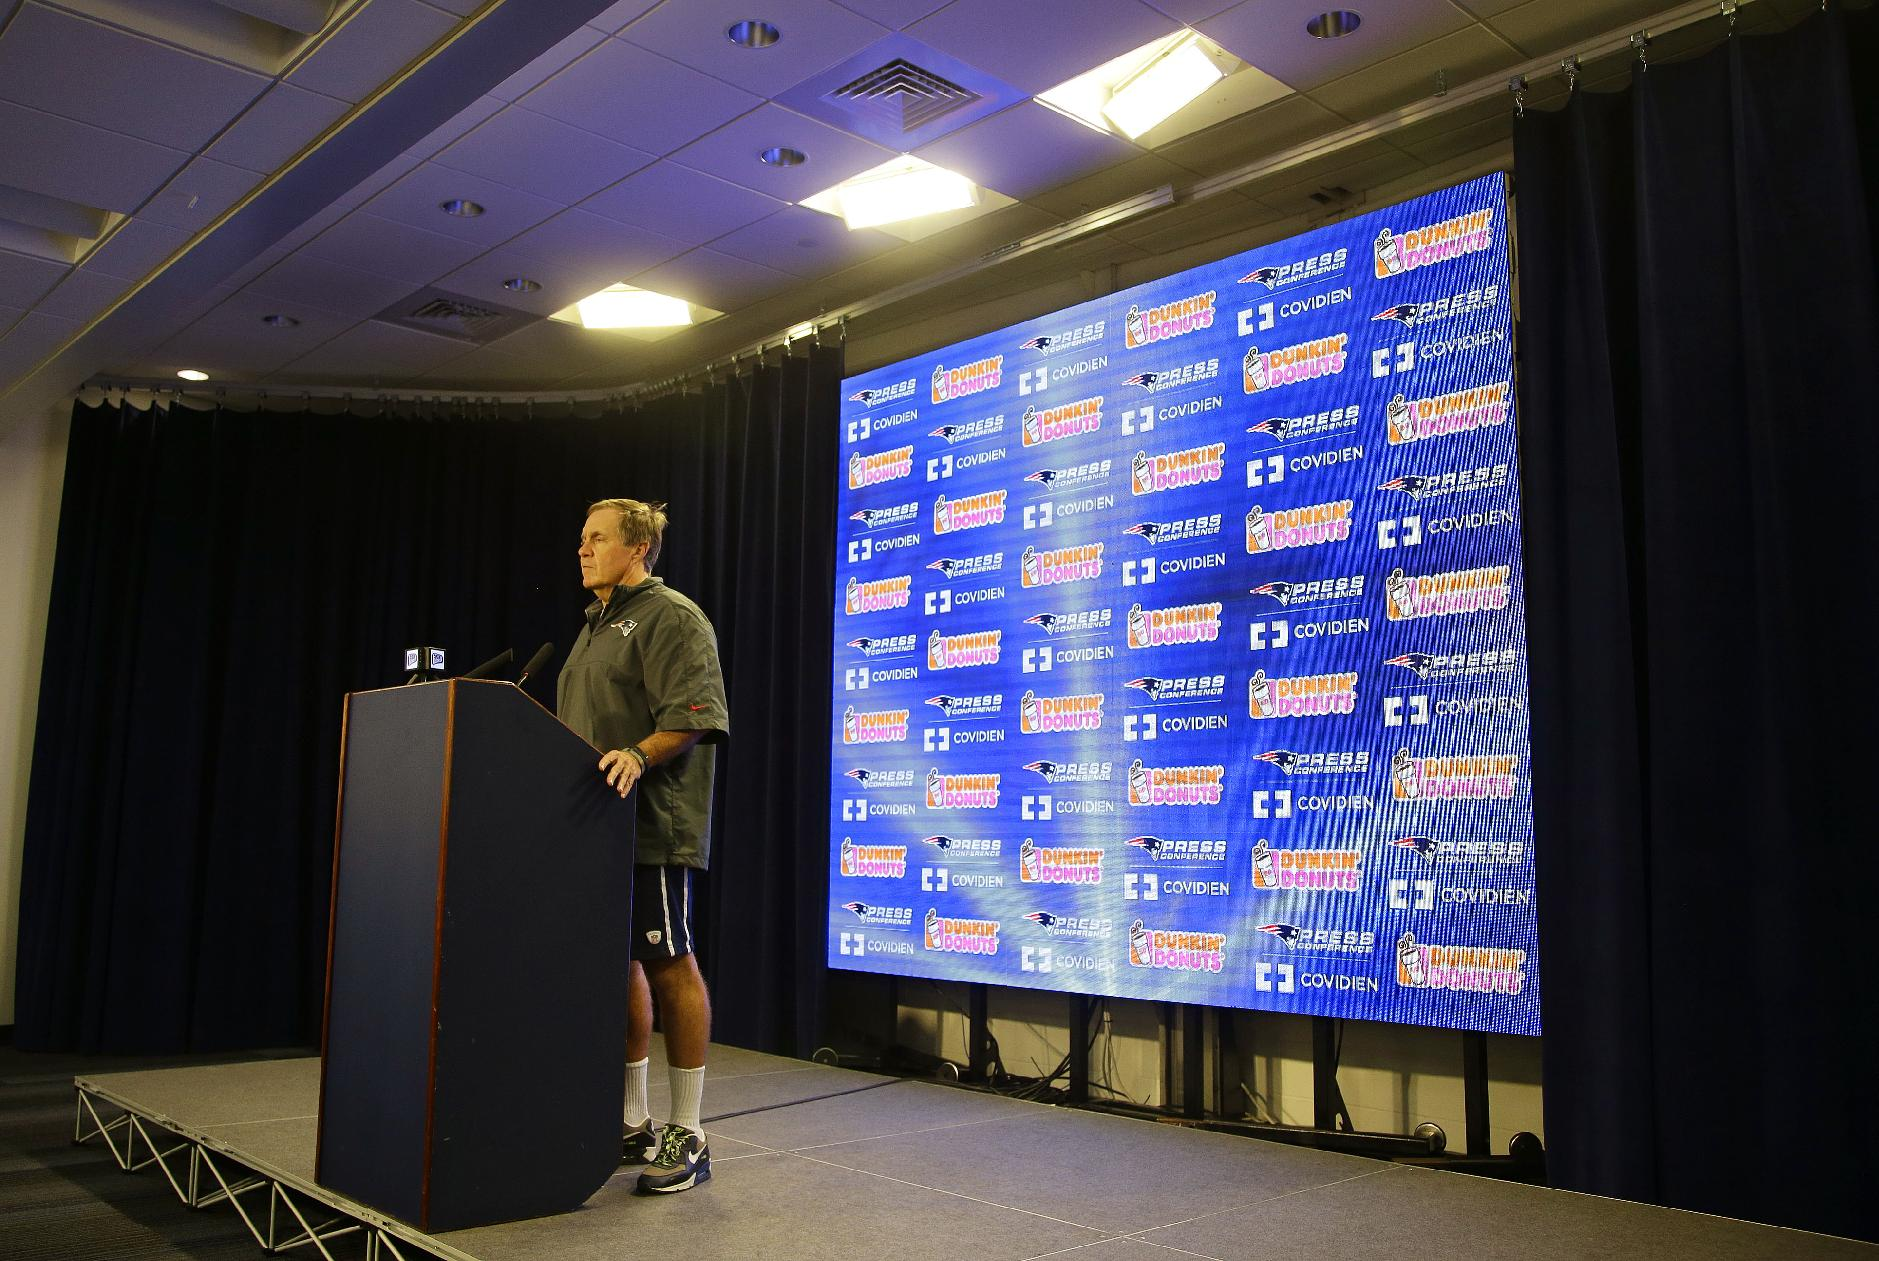 New England Patriots head coach Bill Belichick listens to a reporter's question during a media availability at the NFL football team's facility in  Foxborough, Mass., Wednesday, Oct. 2, 2013